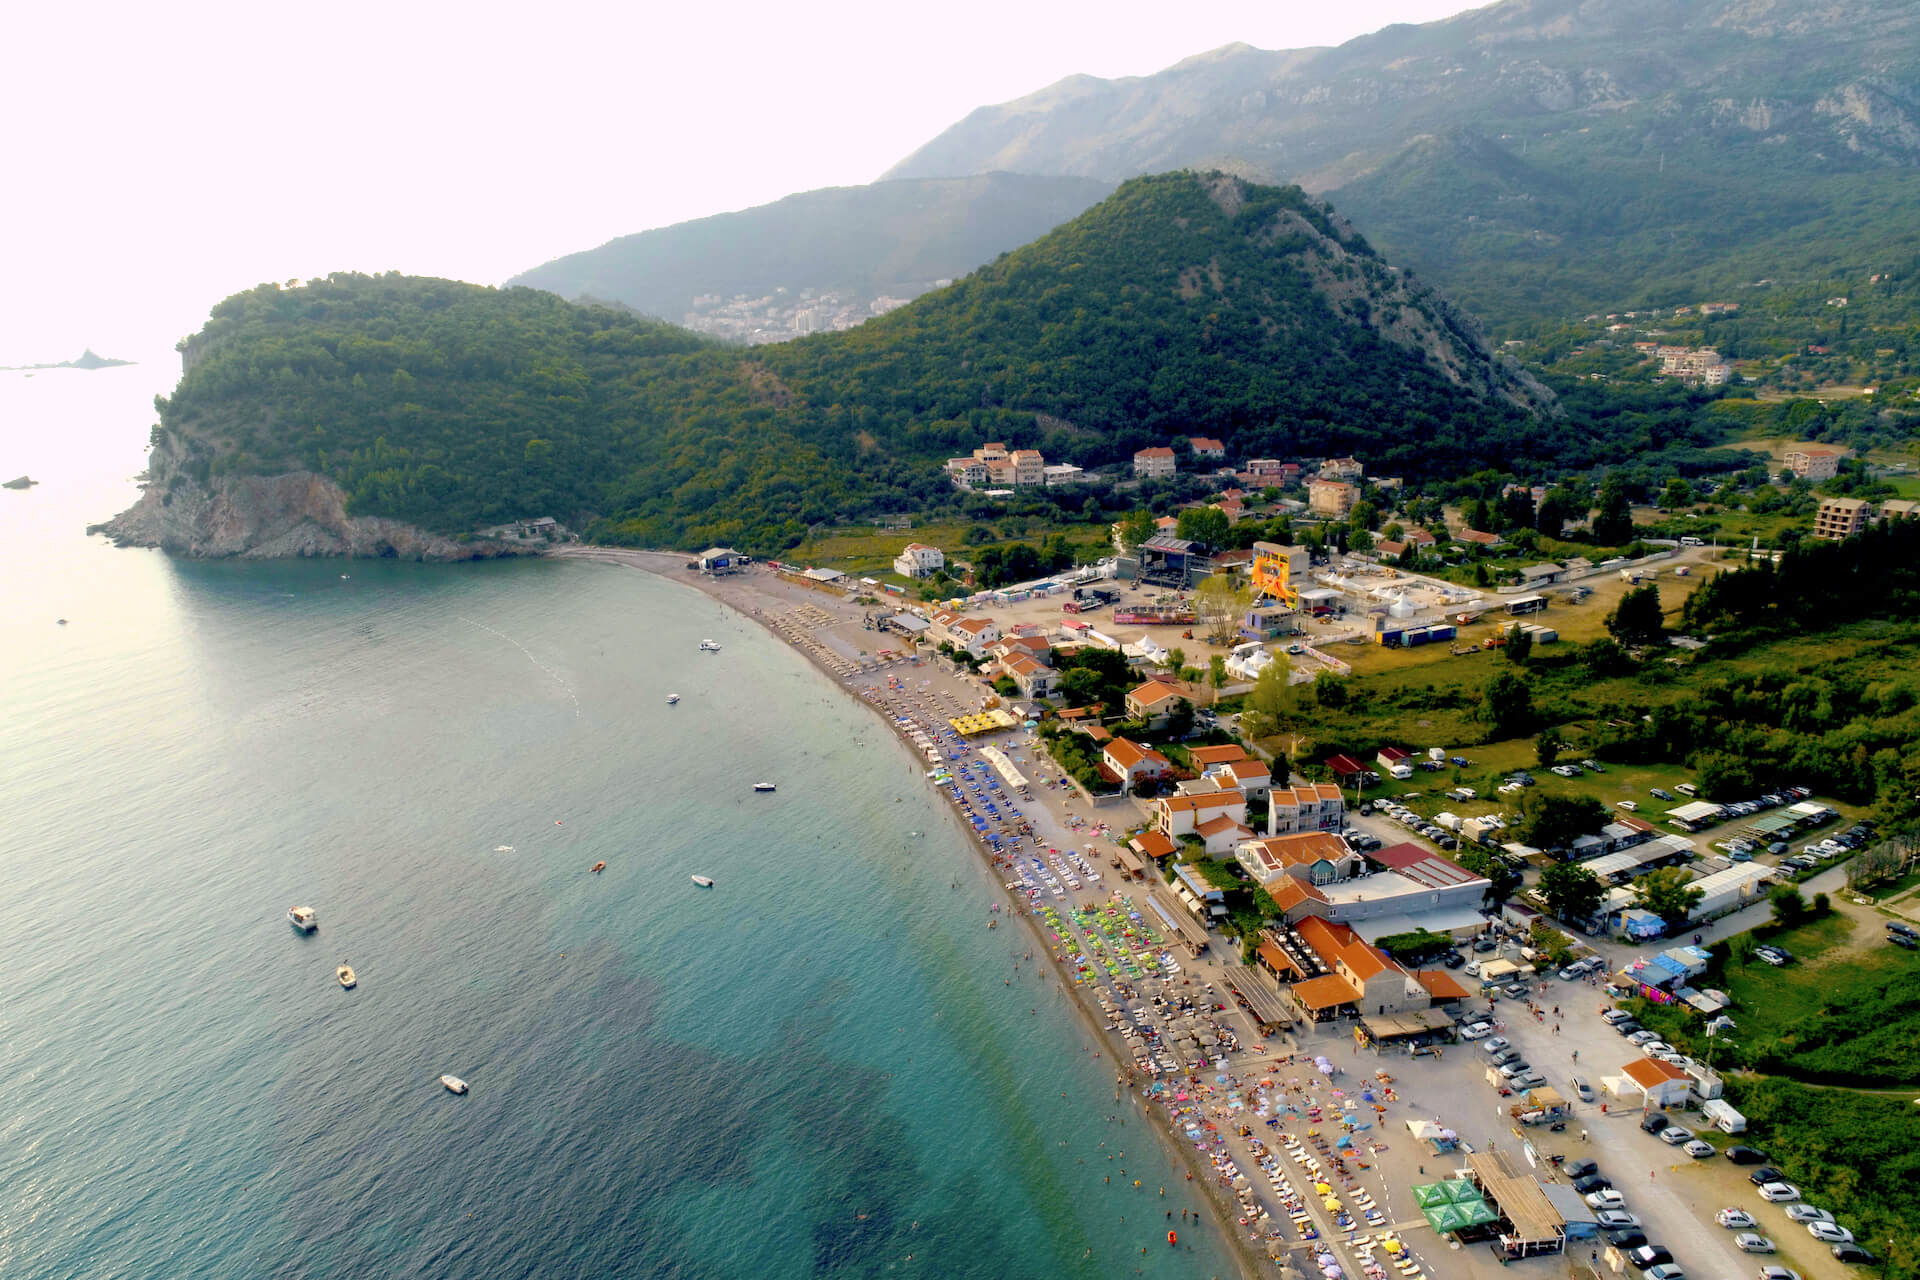 budva-weather budva-hostels budva-activities budva-sea budva-registration-fee